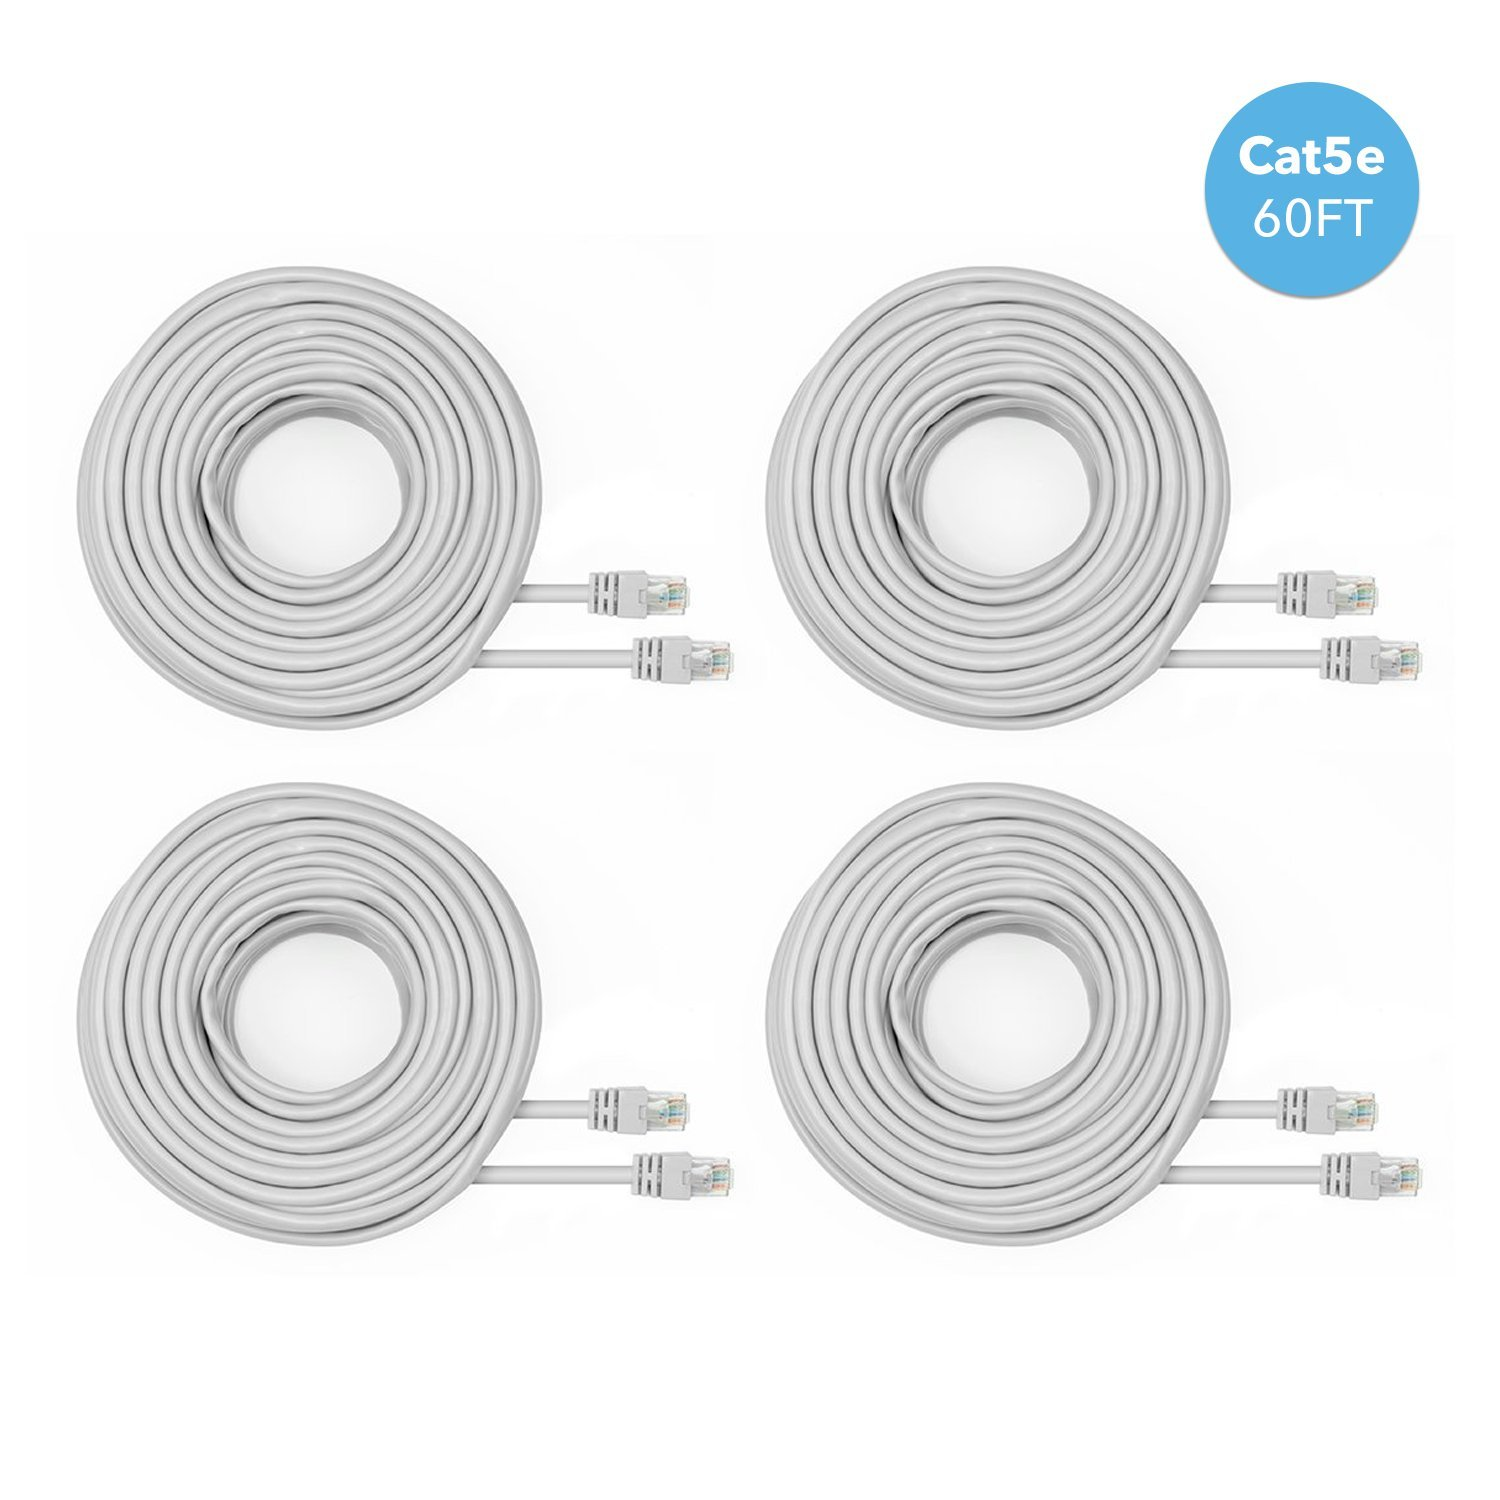 Amcrest Cat5e Cable 60ft Ethernet Cable Internet High Speed Network Cable for POE Security Cameras, Smart TV, PS4, Xbox One, Router, Laptop, Computer, Home, 4-Pack (4PACK-CAT5ECABLE60)